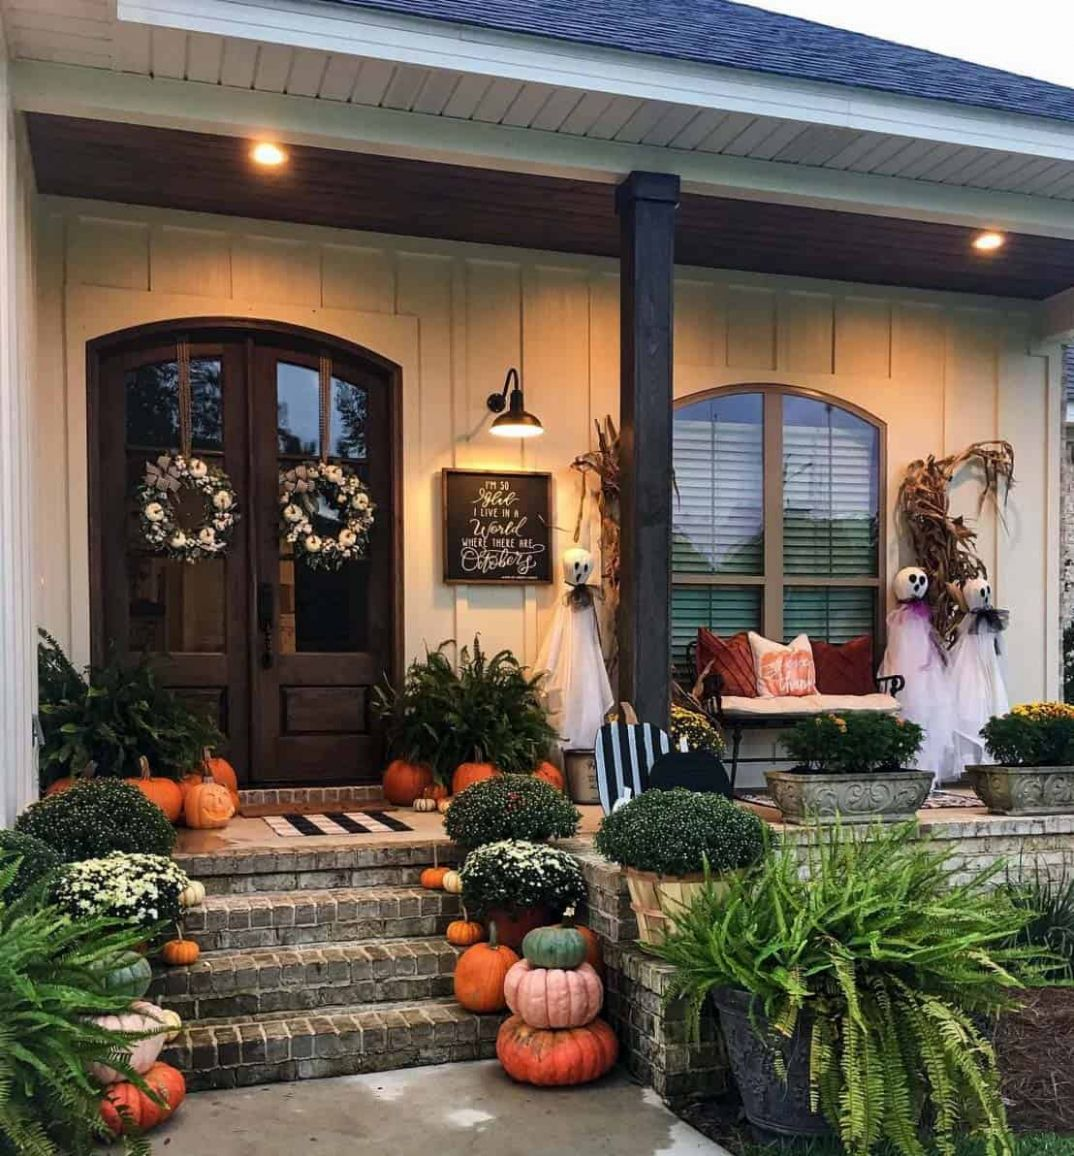 9+ Dreamy Ideas For Decorating Your Front Porch For Fall - front porch decor for thanksgiving